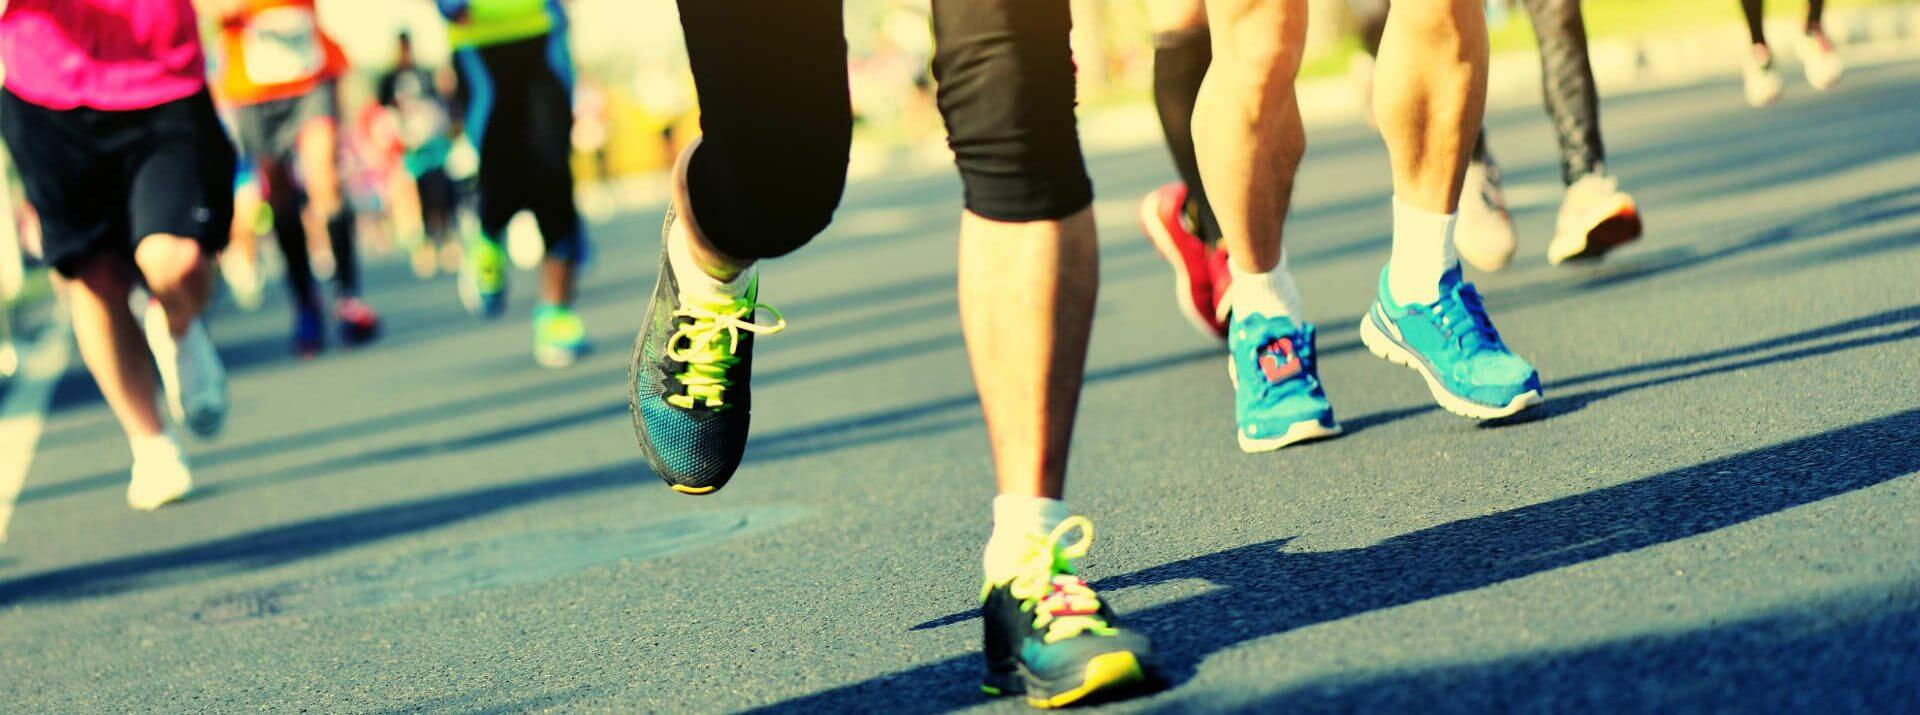 Pain when running? Want to improve your time? Running analysis could help.